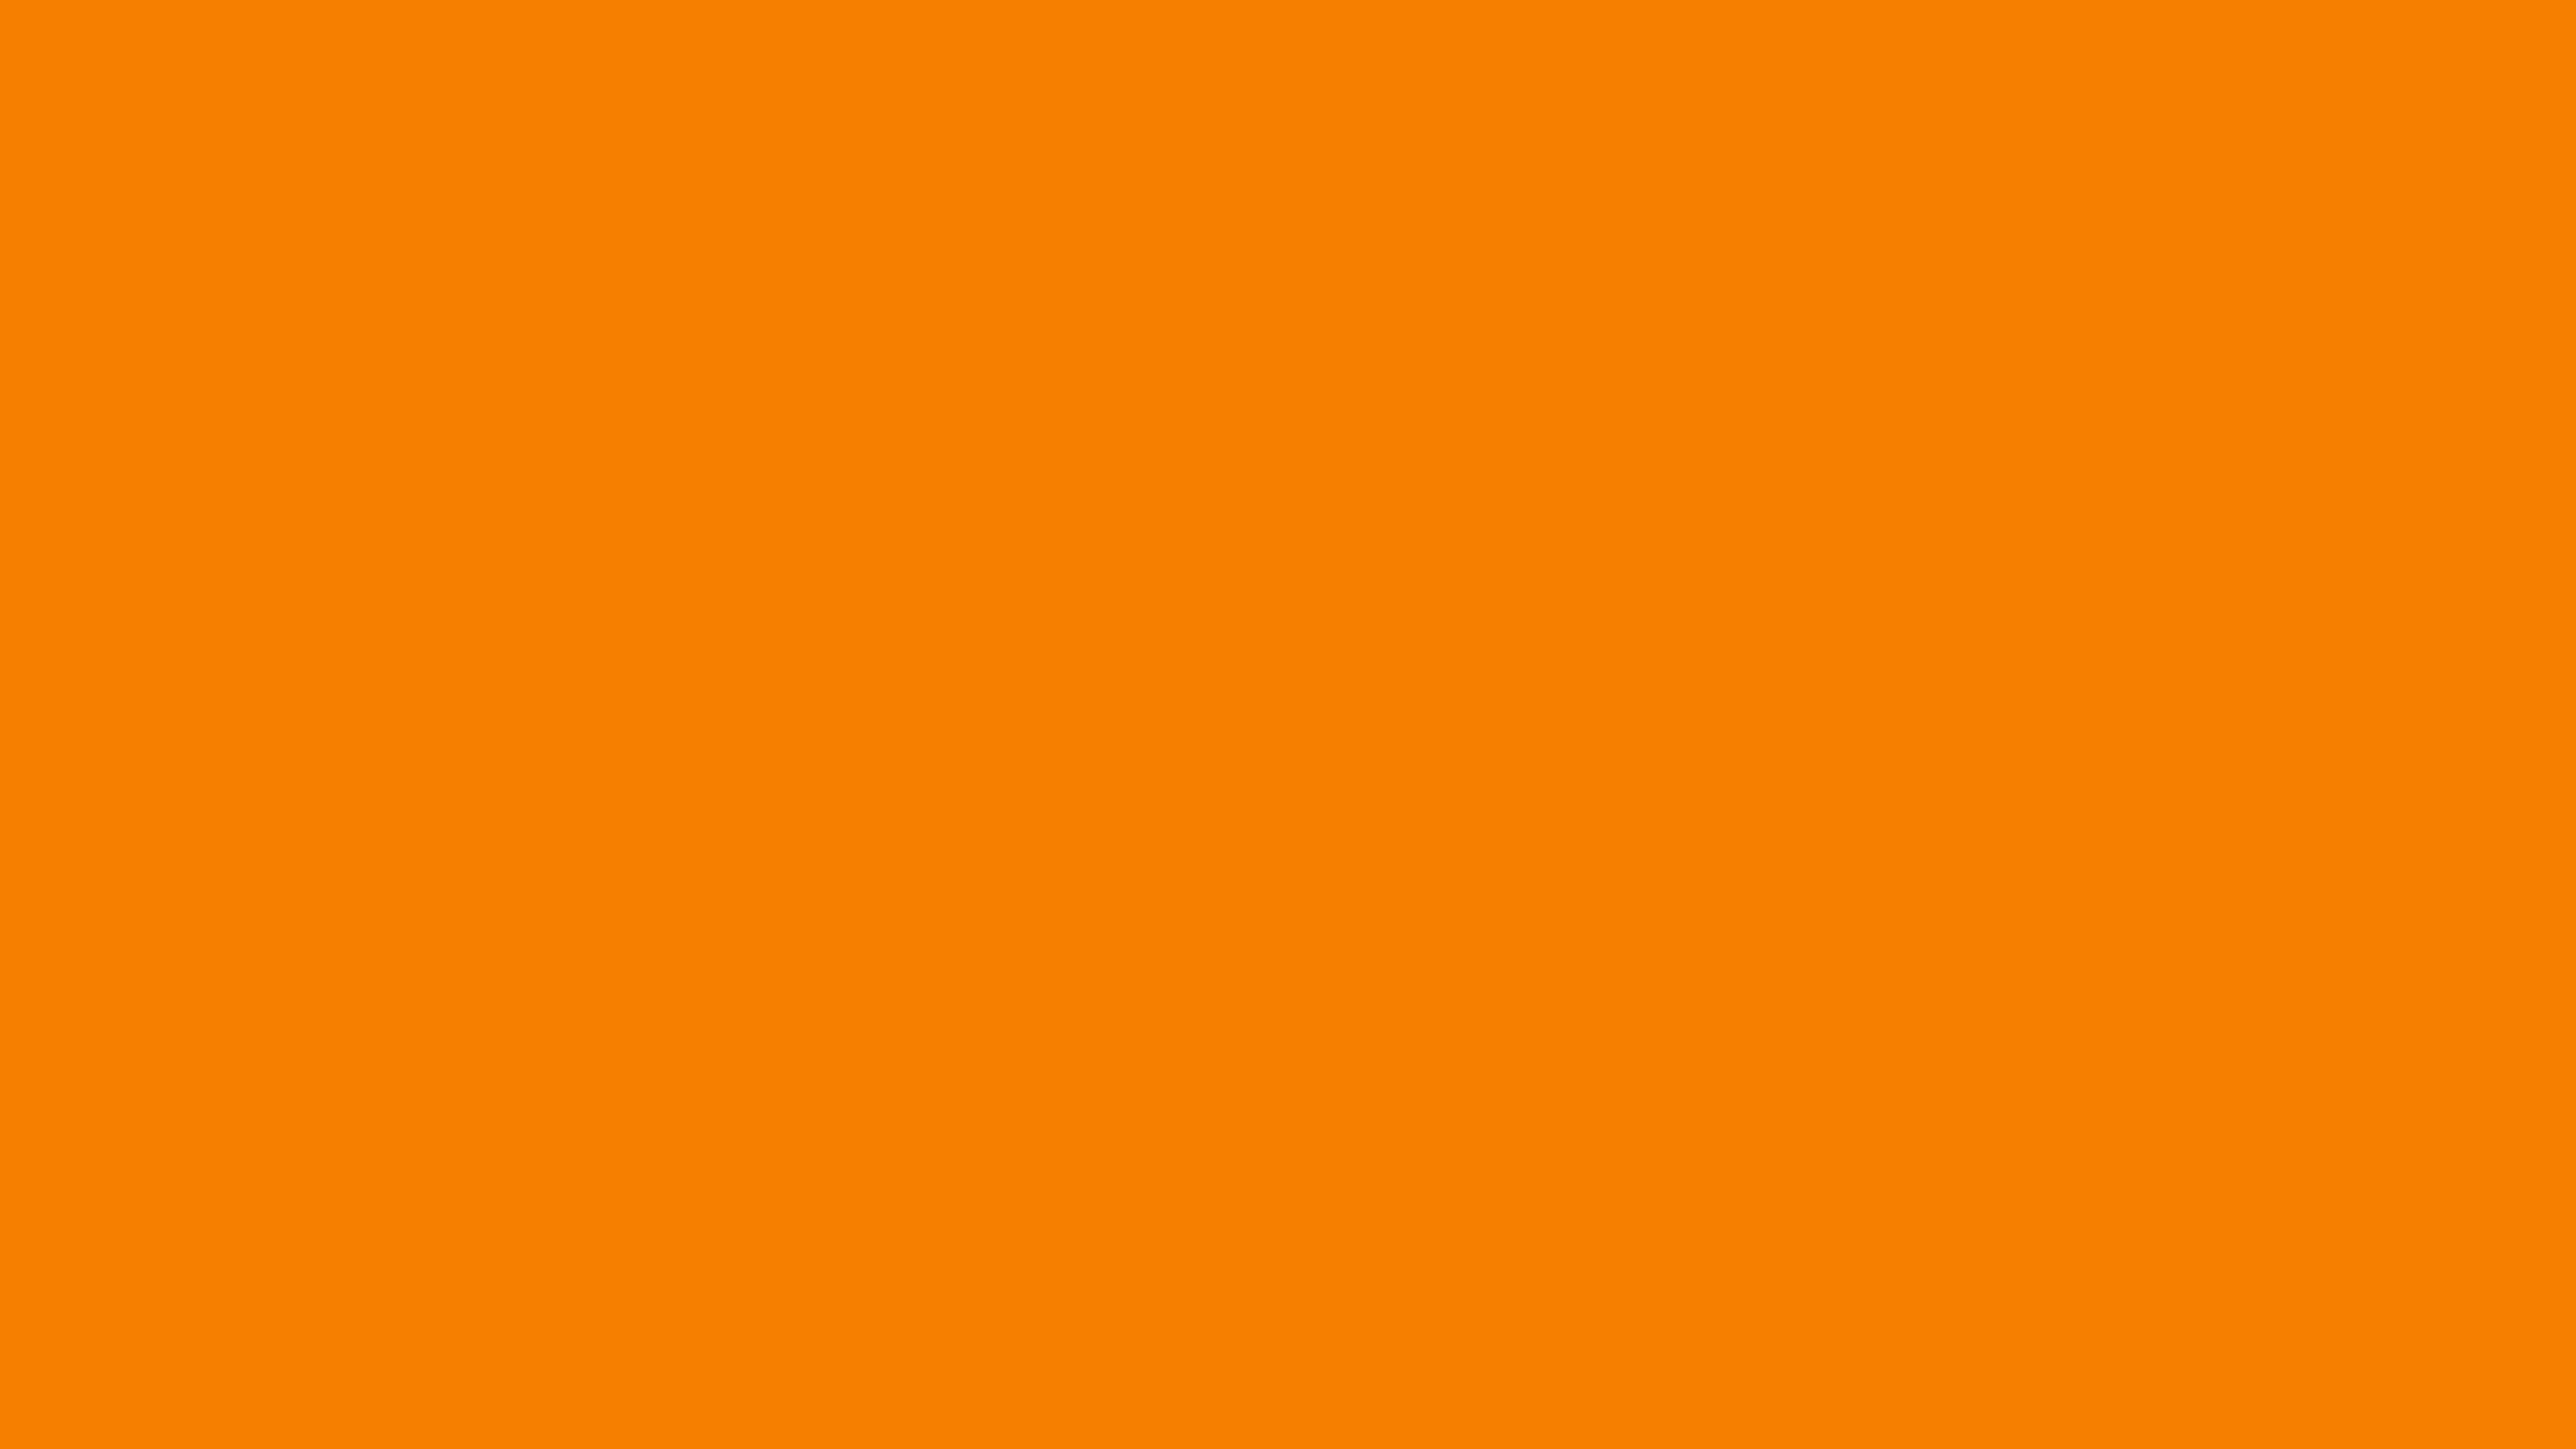 4096x2304 University Of Tennessee Orange Solid Color Background